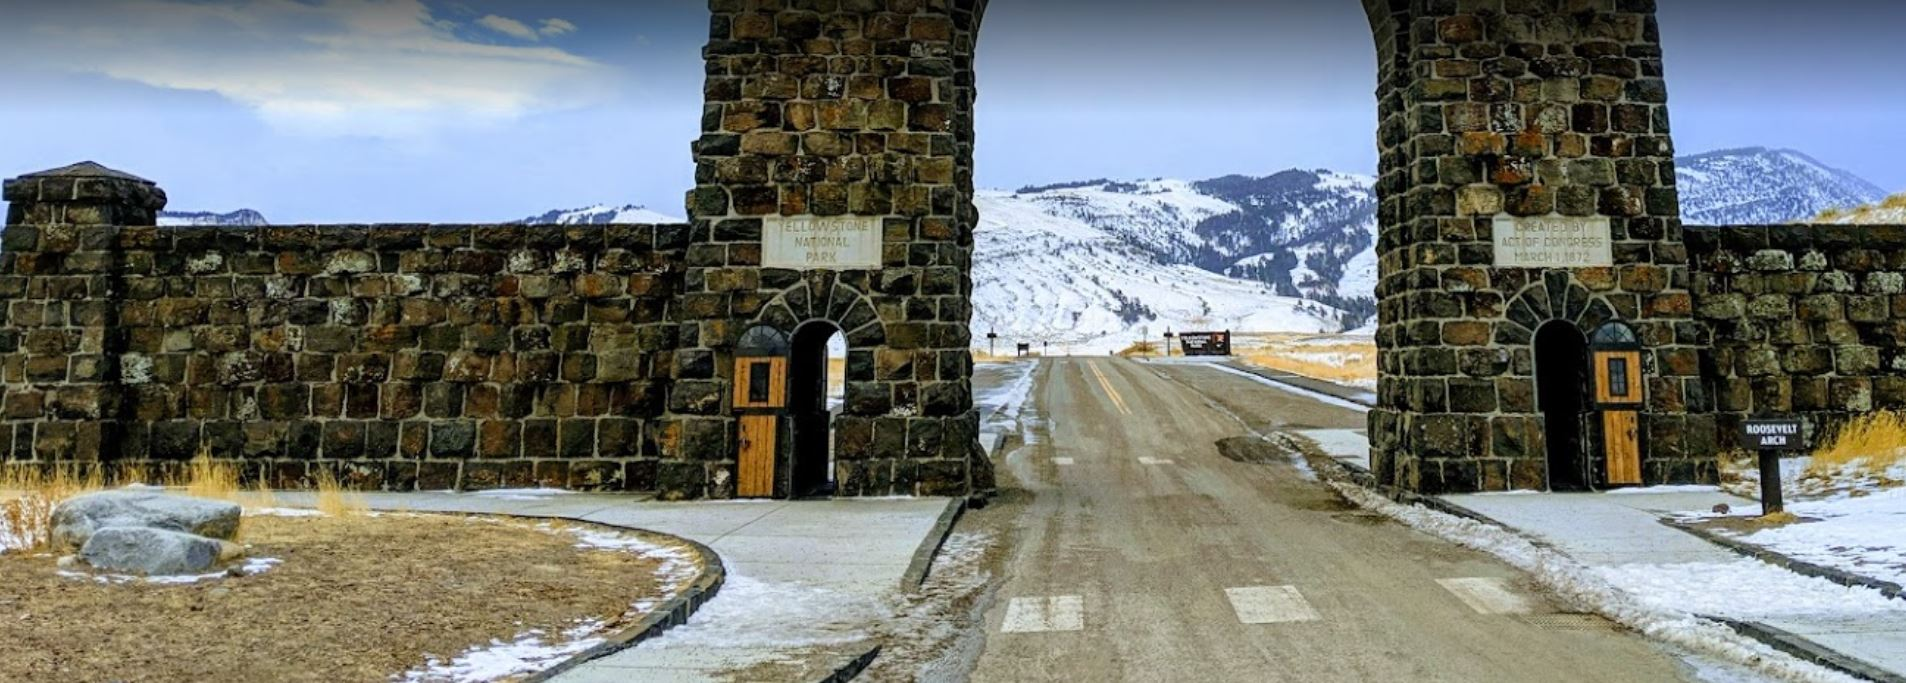 yellowstone arched entrance - welcome to yellowstone national park